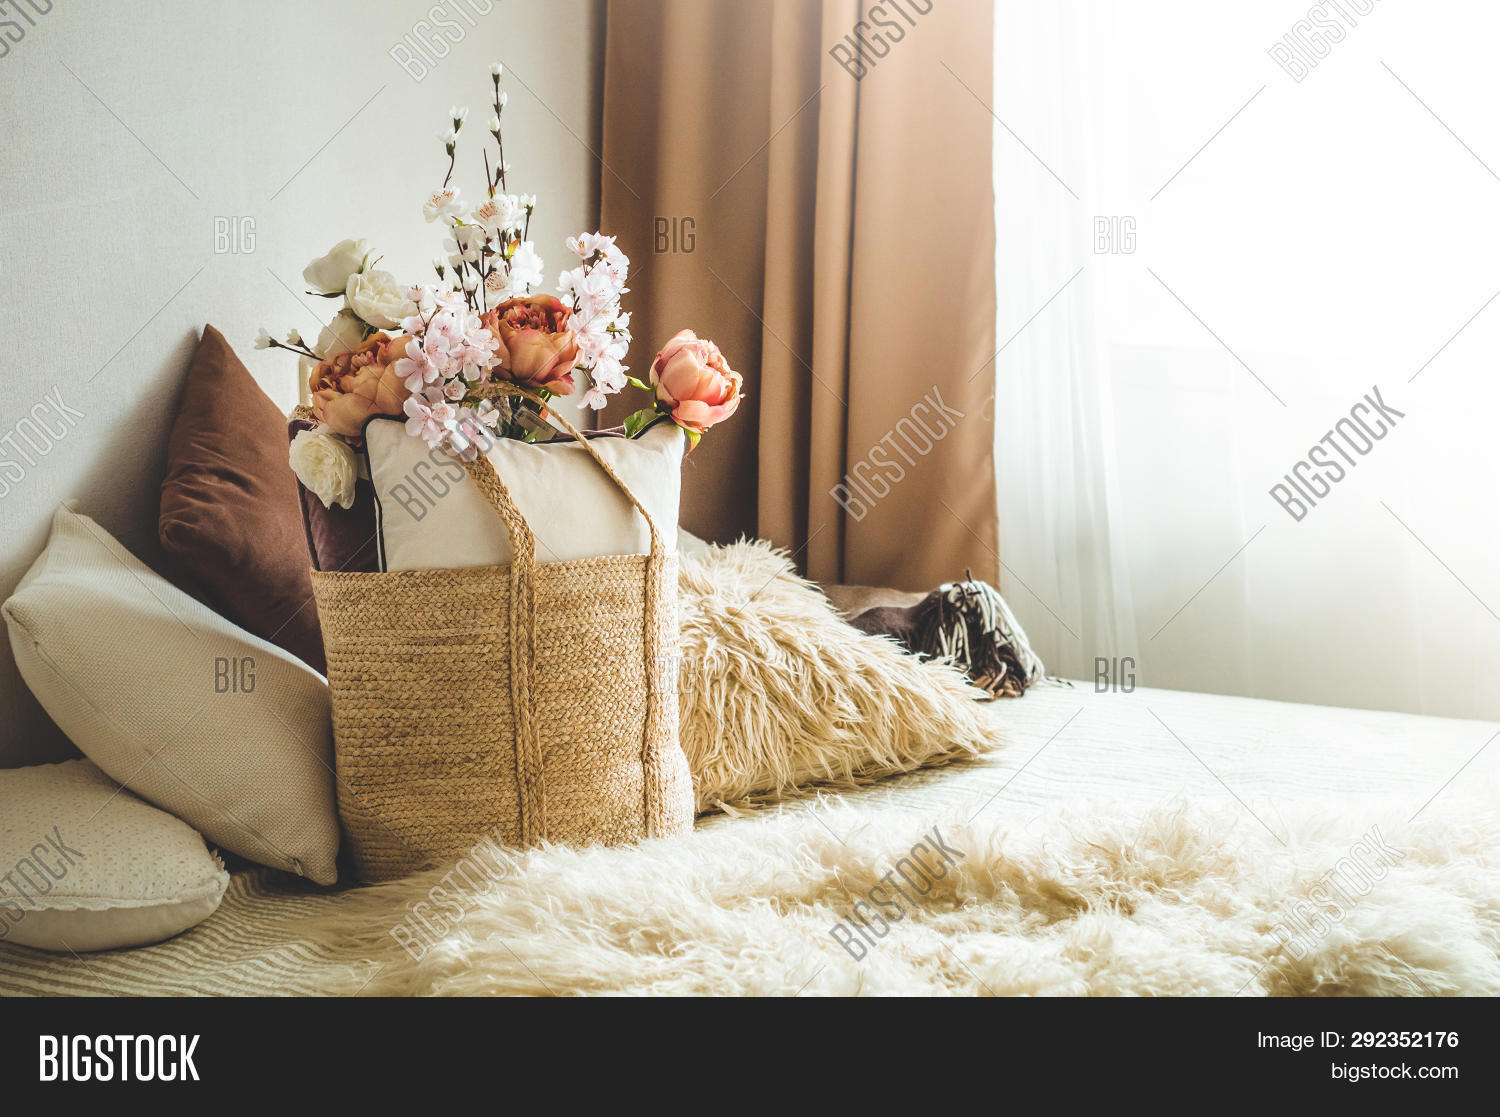 background,basket,beach,bed,candle,coffee,concept,cottage,cozy,decor,decoration,decorative,design,details,floral,flower,french,furniture,glass,handicraft,home,hotel,house,inscription,interior,letters,life,living,lot,modern,old,pastel,pillows,retro,room,rustic,shabby,sign,spring,still,style,summer,sweet,tray,vase,vintage,wall,white,wicker,wooden